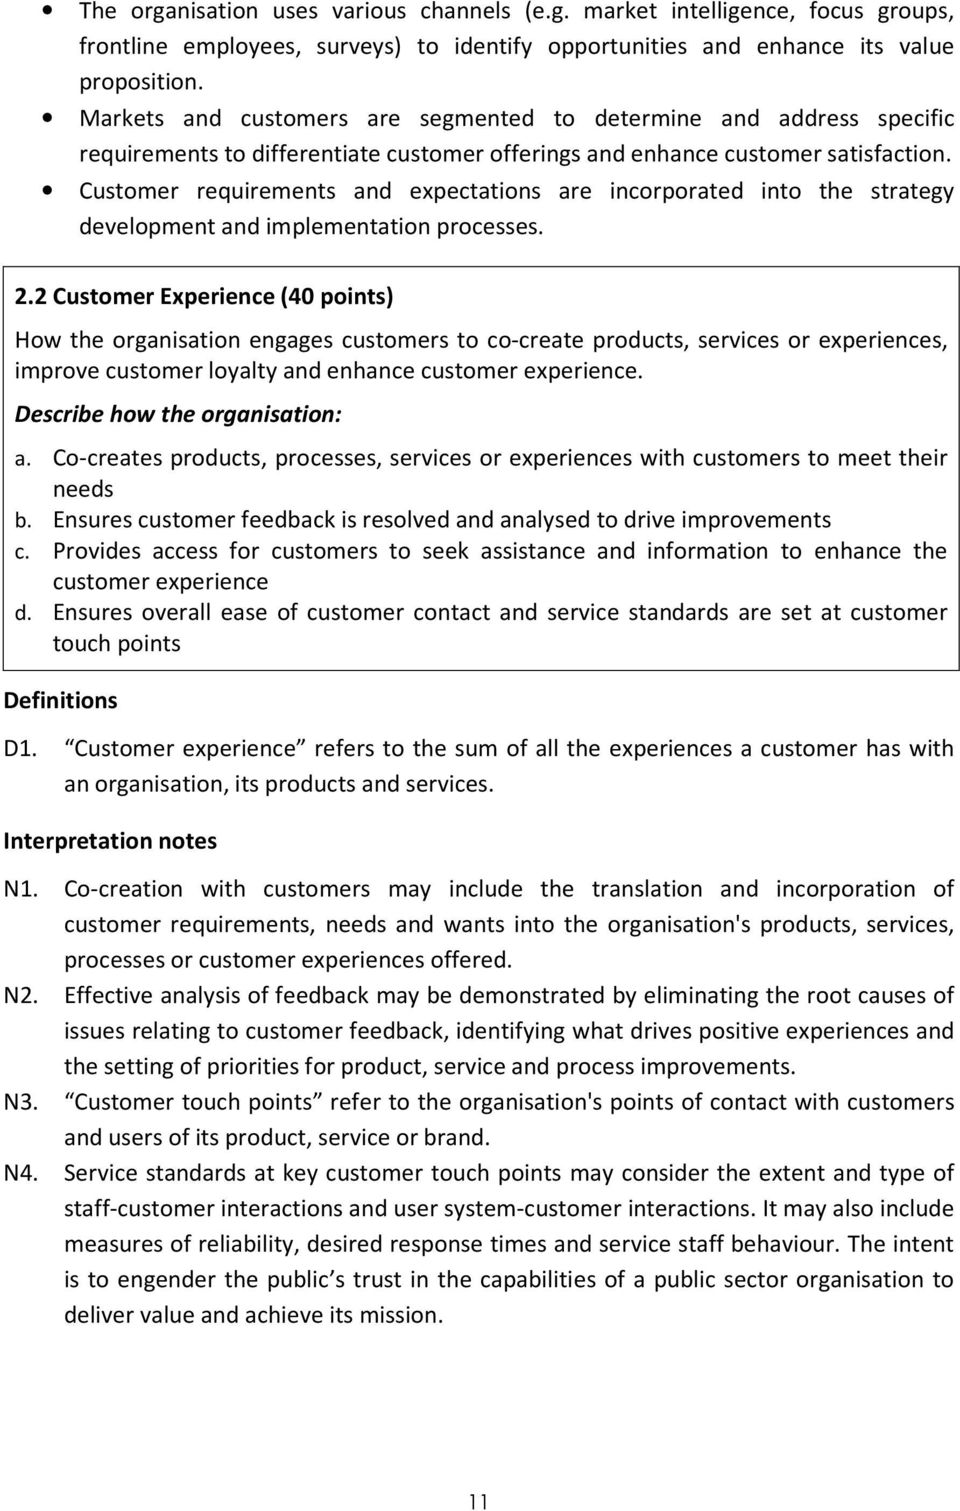 Customer requirements and expectations are incorporated into the strategy development and implementation processes. 2.